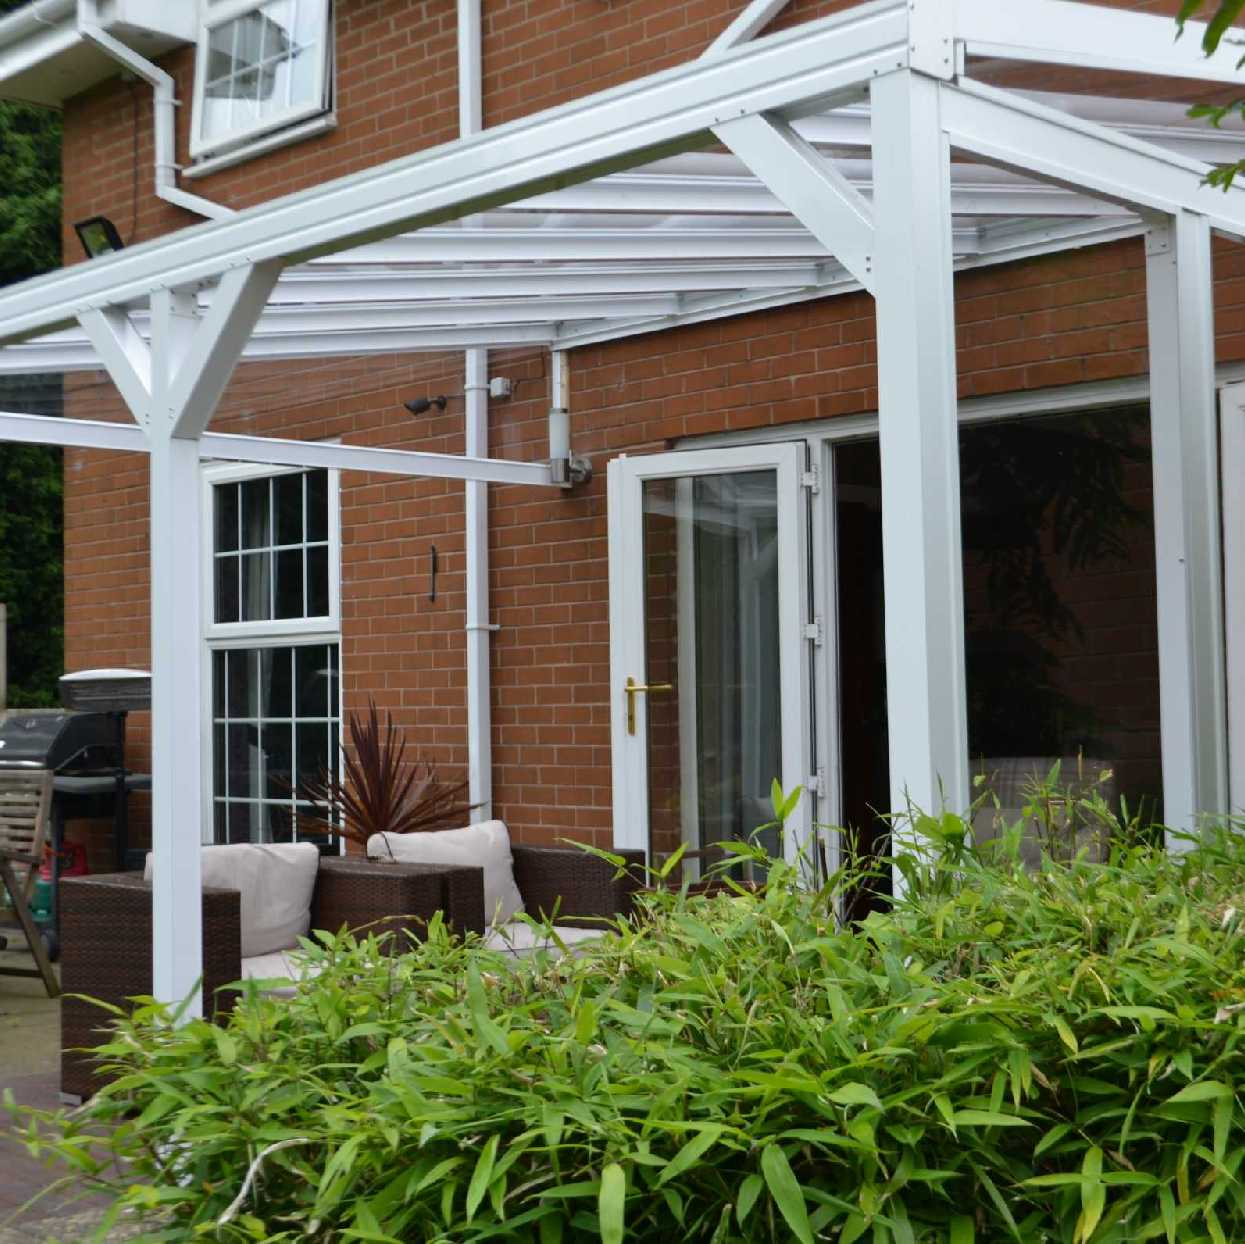 Omega Smart Lean-To Canopy with 6mm Glass Clear Plate Polycarbonate Glazing - 9.8m (W) x 2.5m (P), (5) Supporting Posts from Omega Build